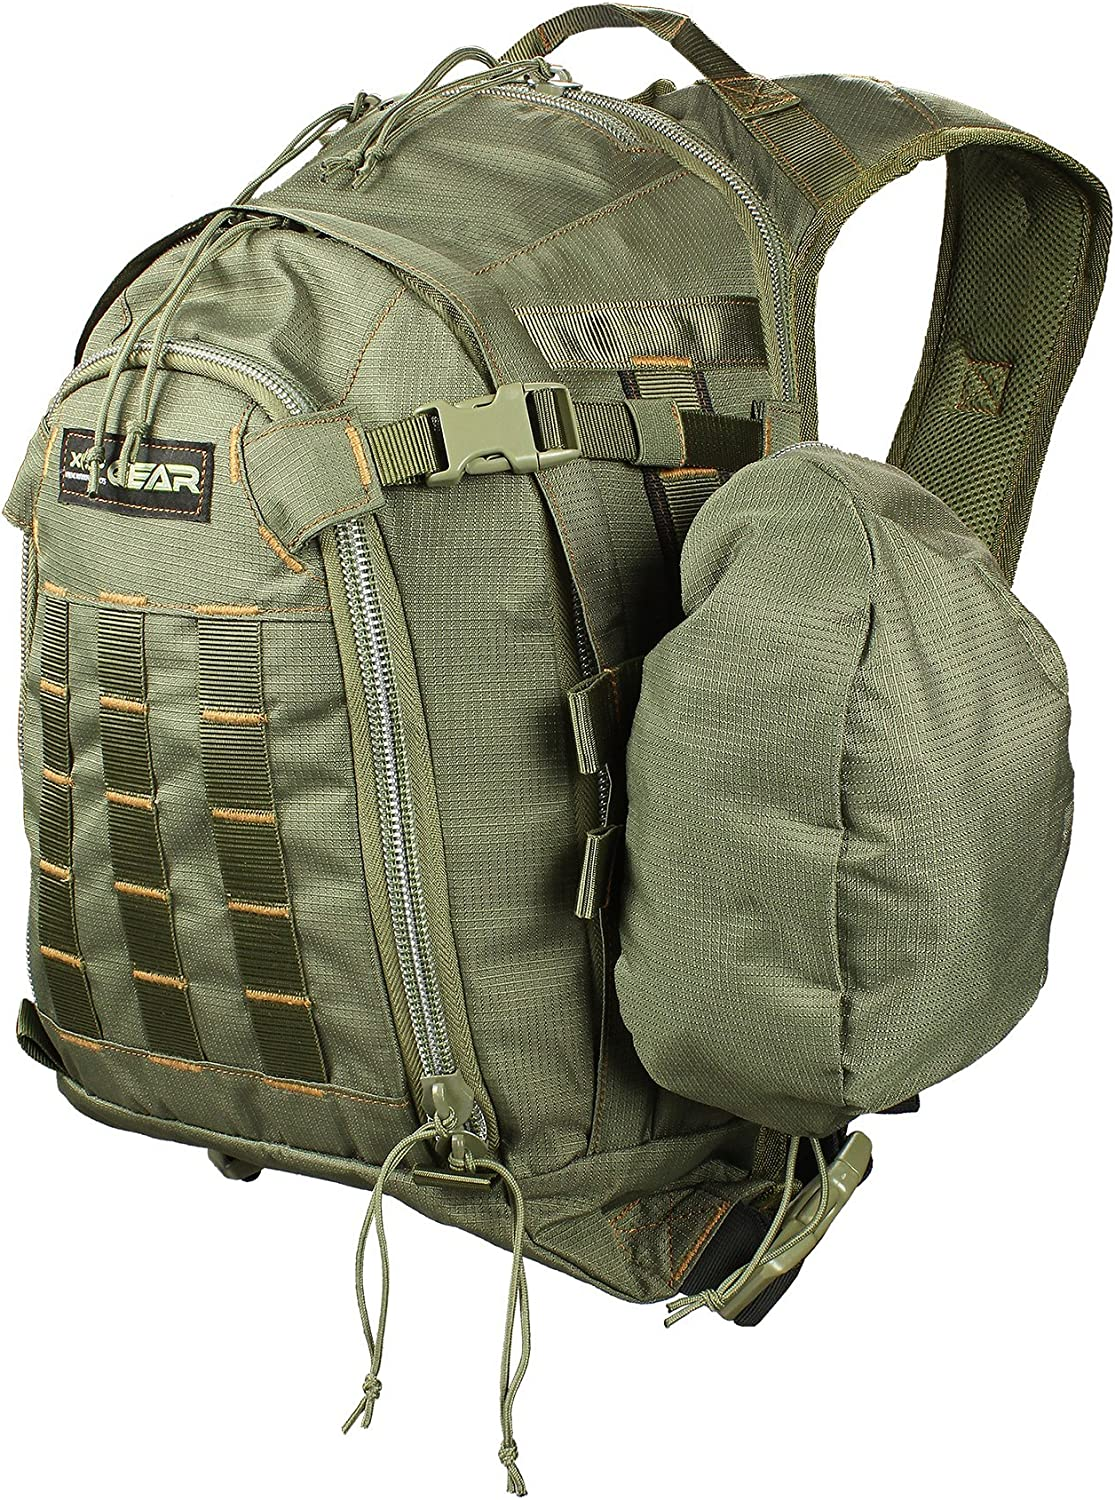 XOPXTREME OUTDOOR PRODUCTS Backyard Expressions Shadow Backpack